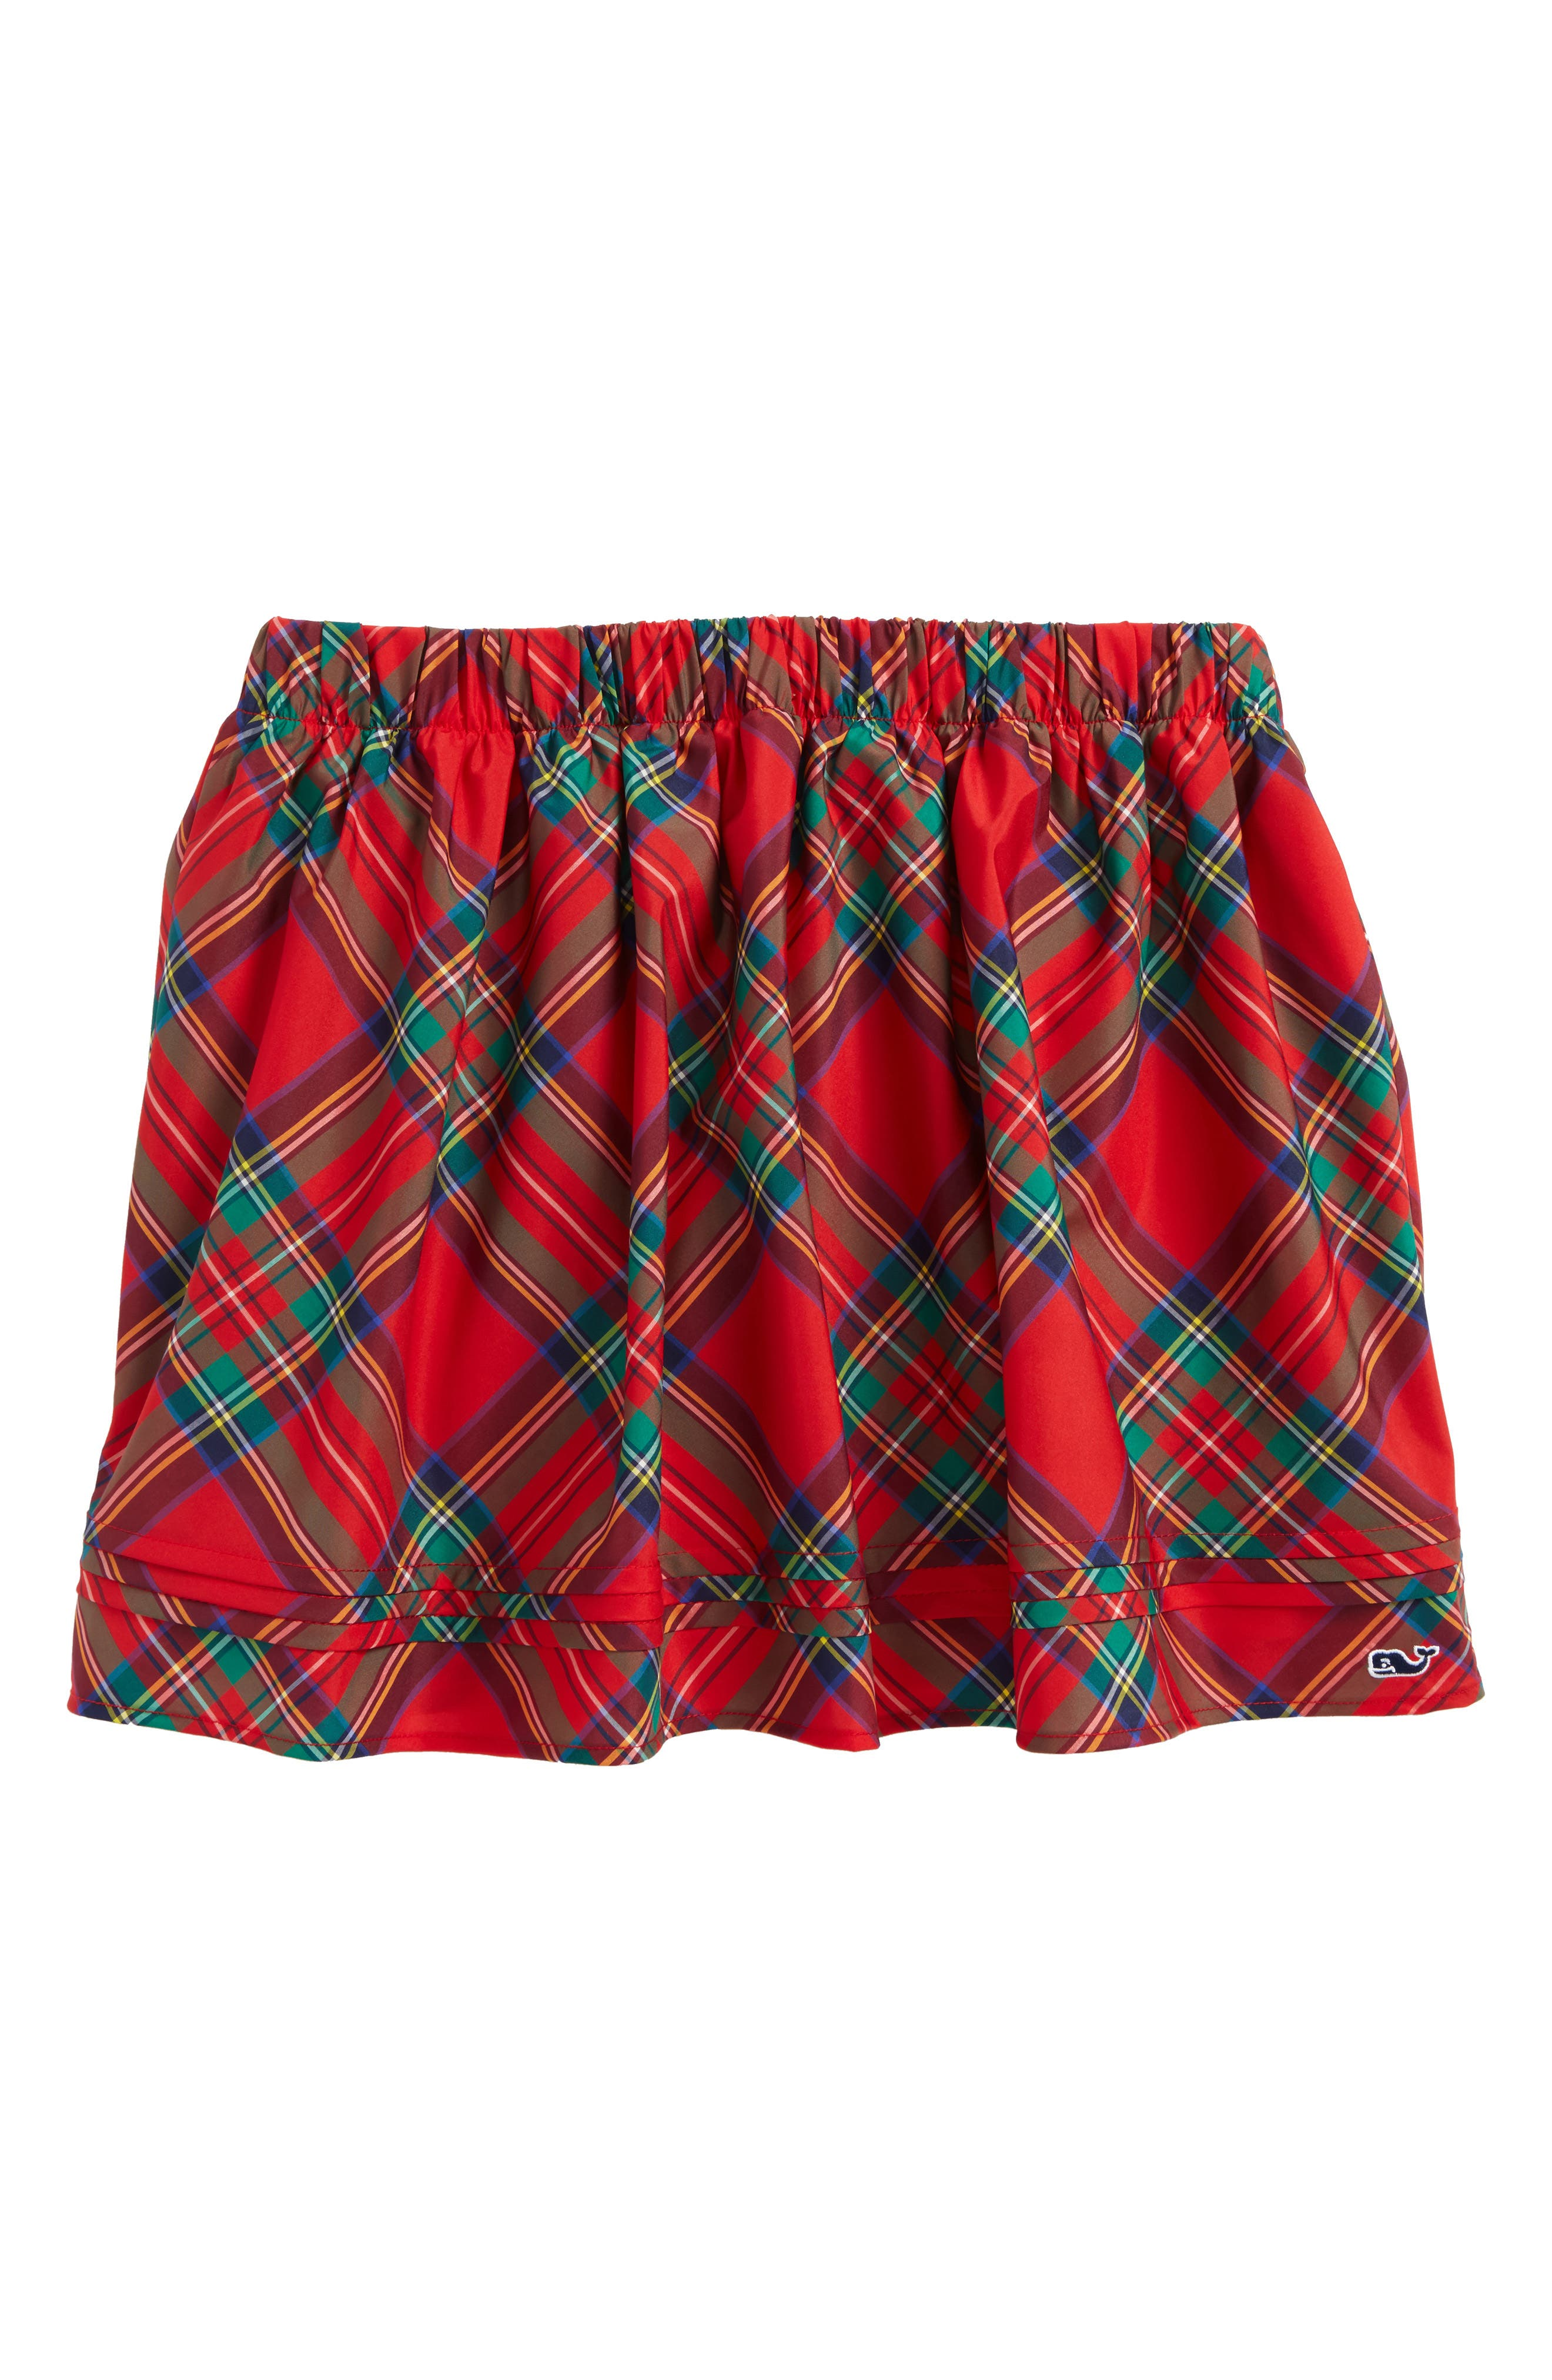 Jolly Plaid Party Skirt,                             Main thumbnail 1, color,                             Lighthouse Red